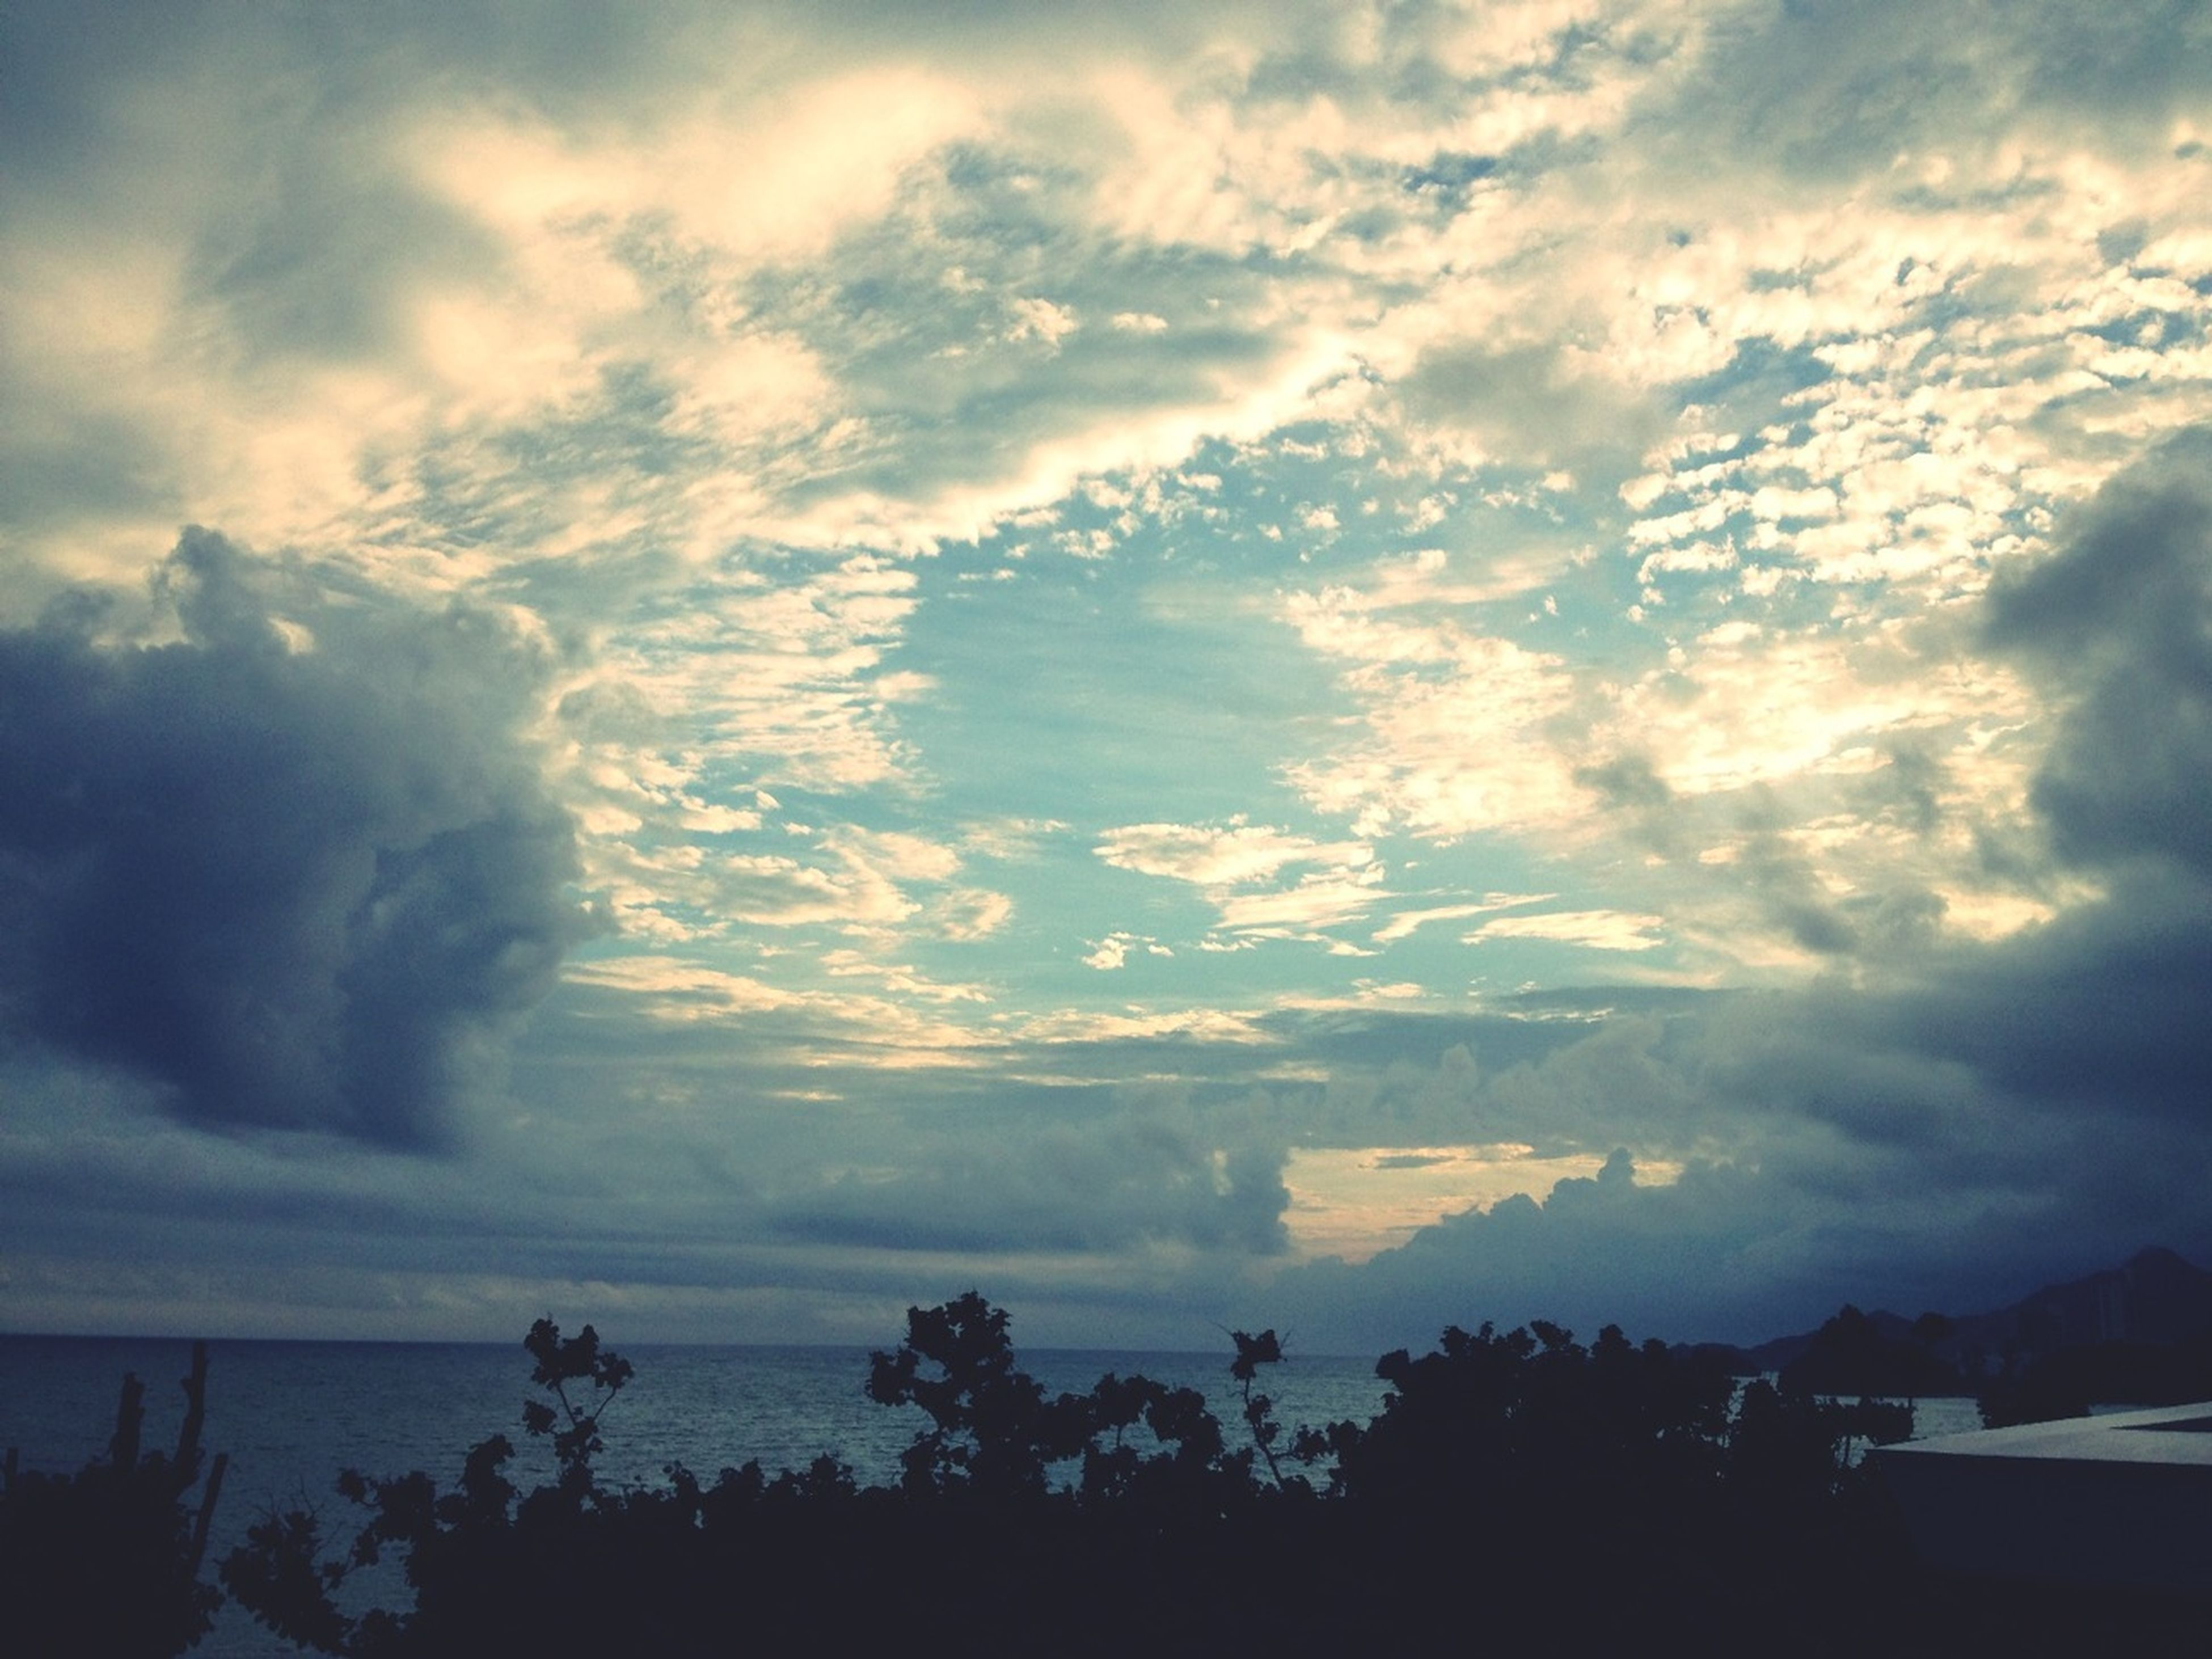 sky, cloud - sky, tranquil scene, cloudy, tranquility, scenics, beauty in nature, silhouette, tree, nature, weather, cloud, cloudscape, overcast, idyllic, landscape, outdoors, no people, dusk, dramatic sky